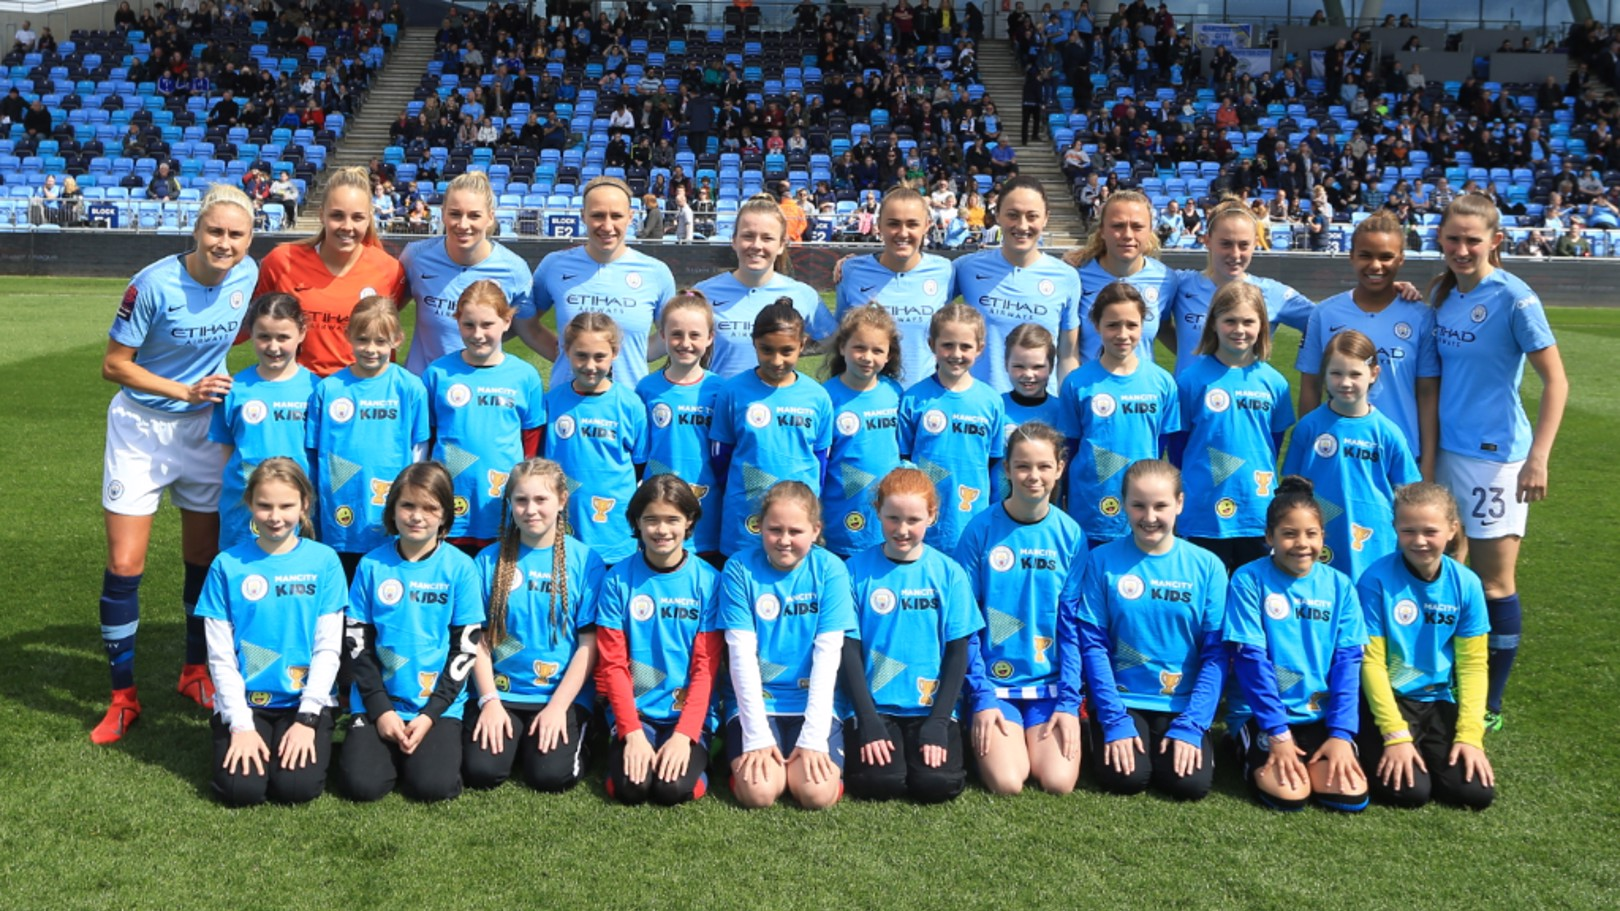 CITY FAMILY: Become affiliated with Manchester City's women's team for the 2019/20 season